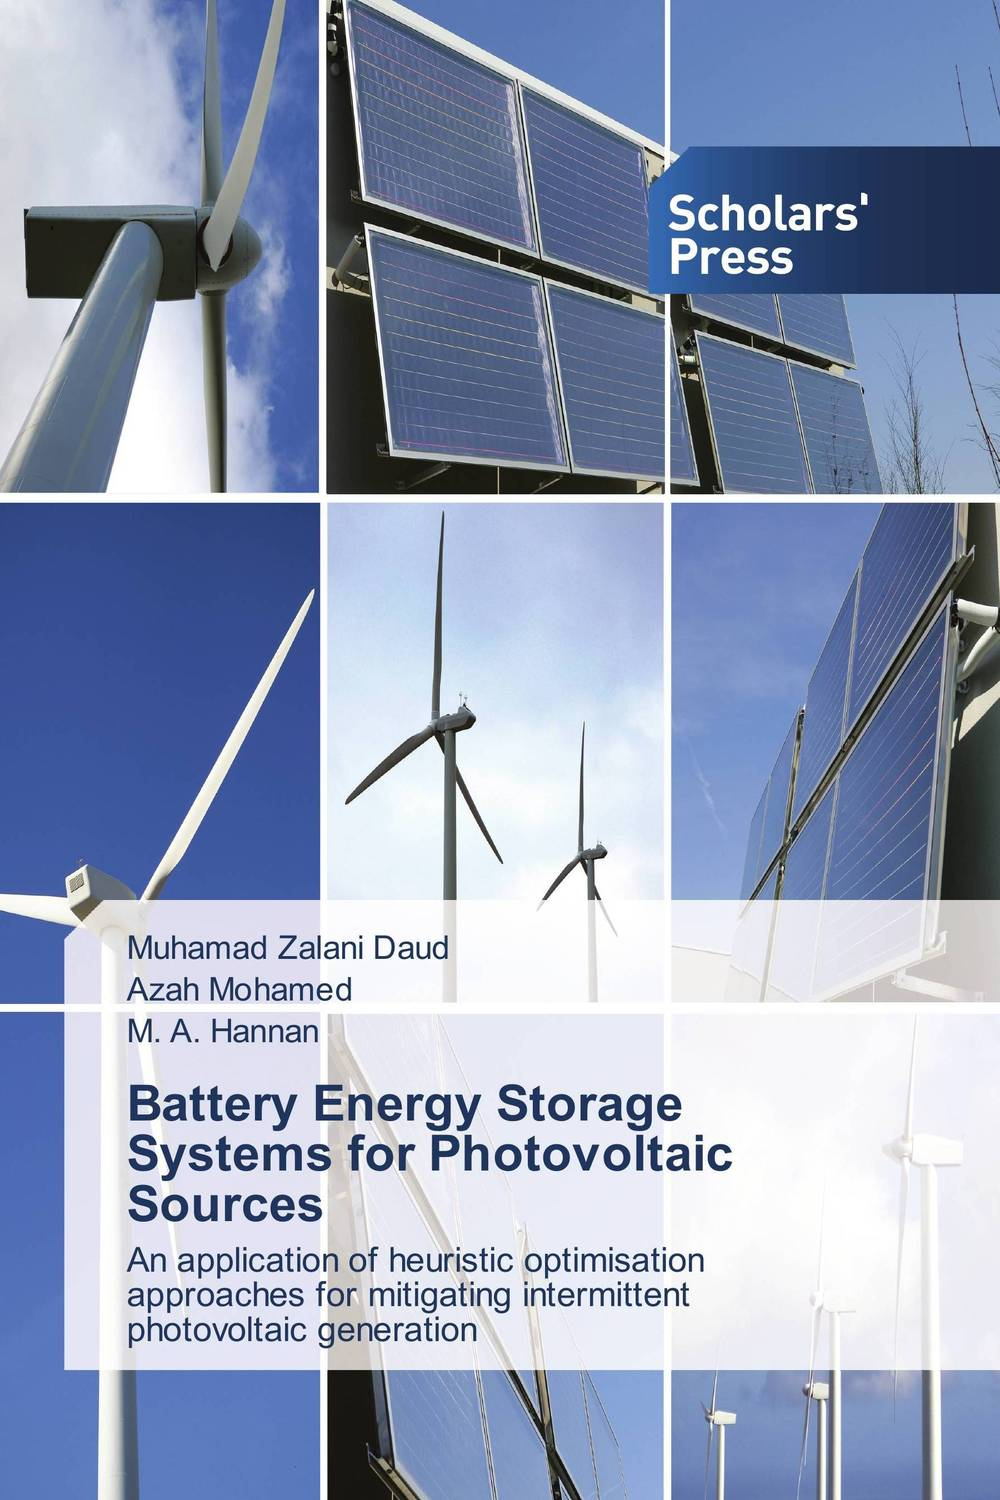 Battery Energy Storage Systems for Photovoltaic Sources photovoltaic water pumping systems